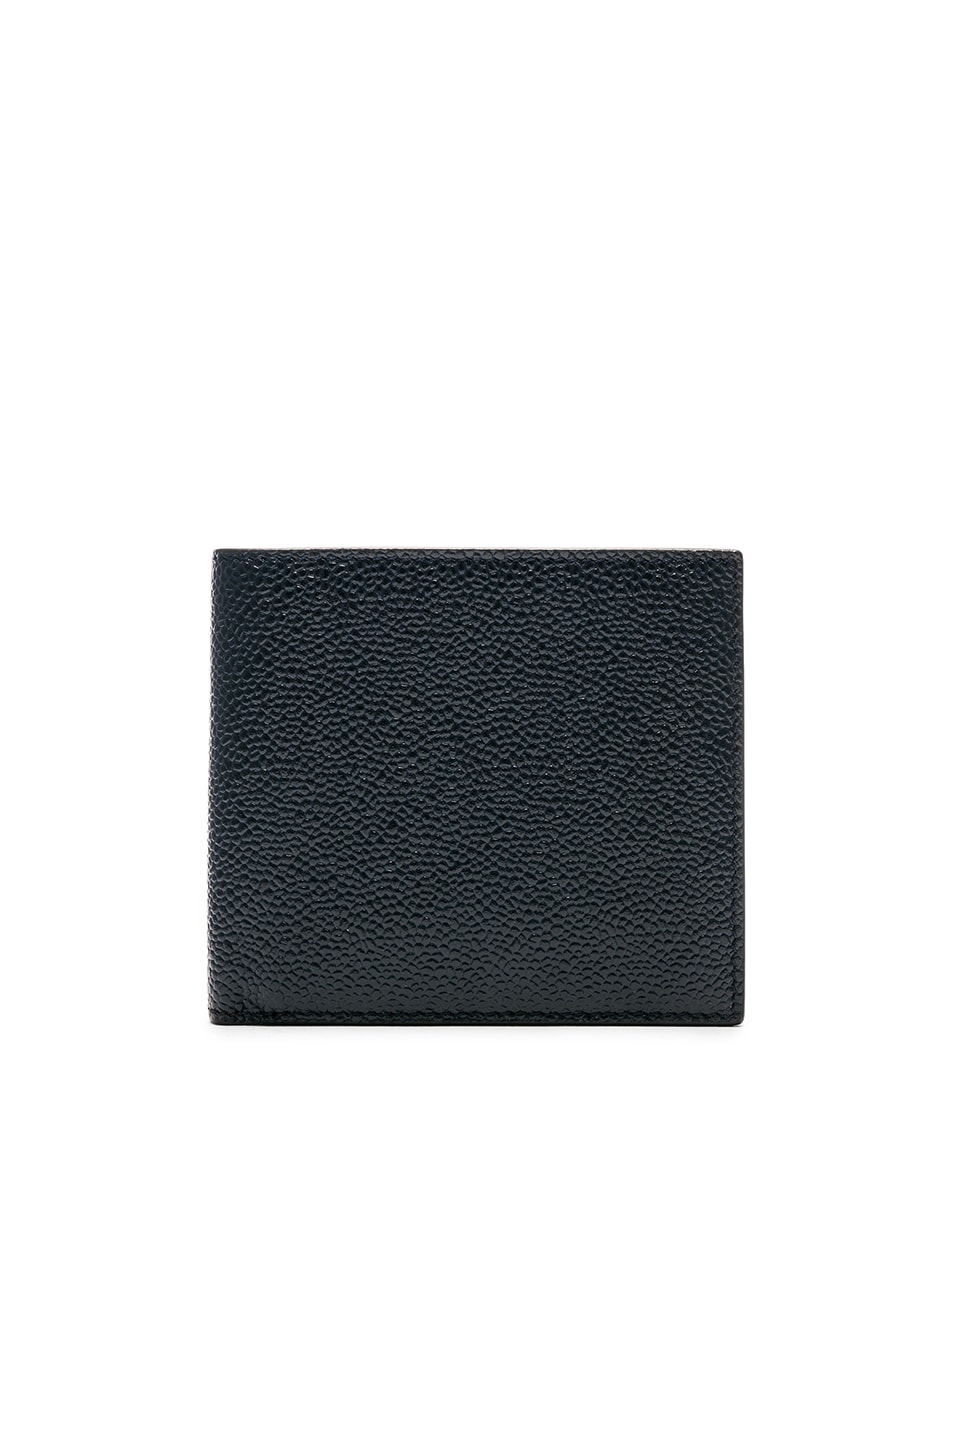 Thom Browne Leathers THOM BROWNE PEBBLE GRAIN BILLFOLD IN BLUE